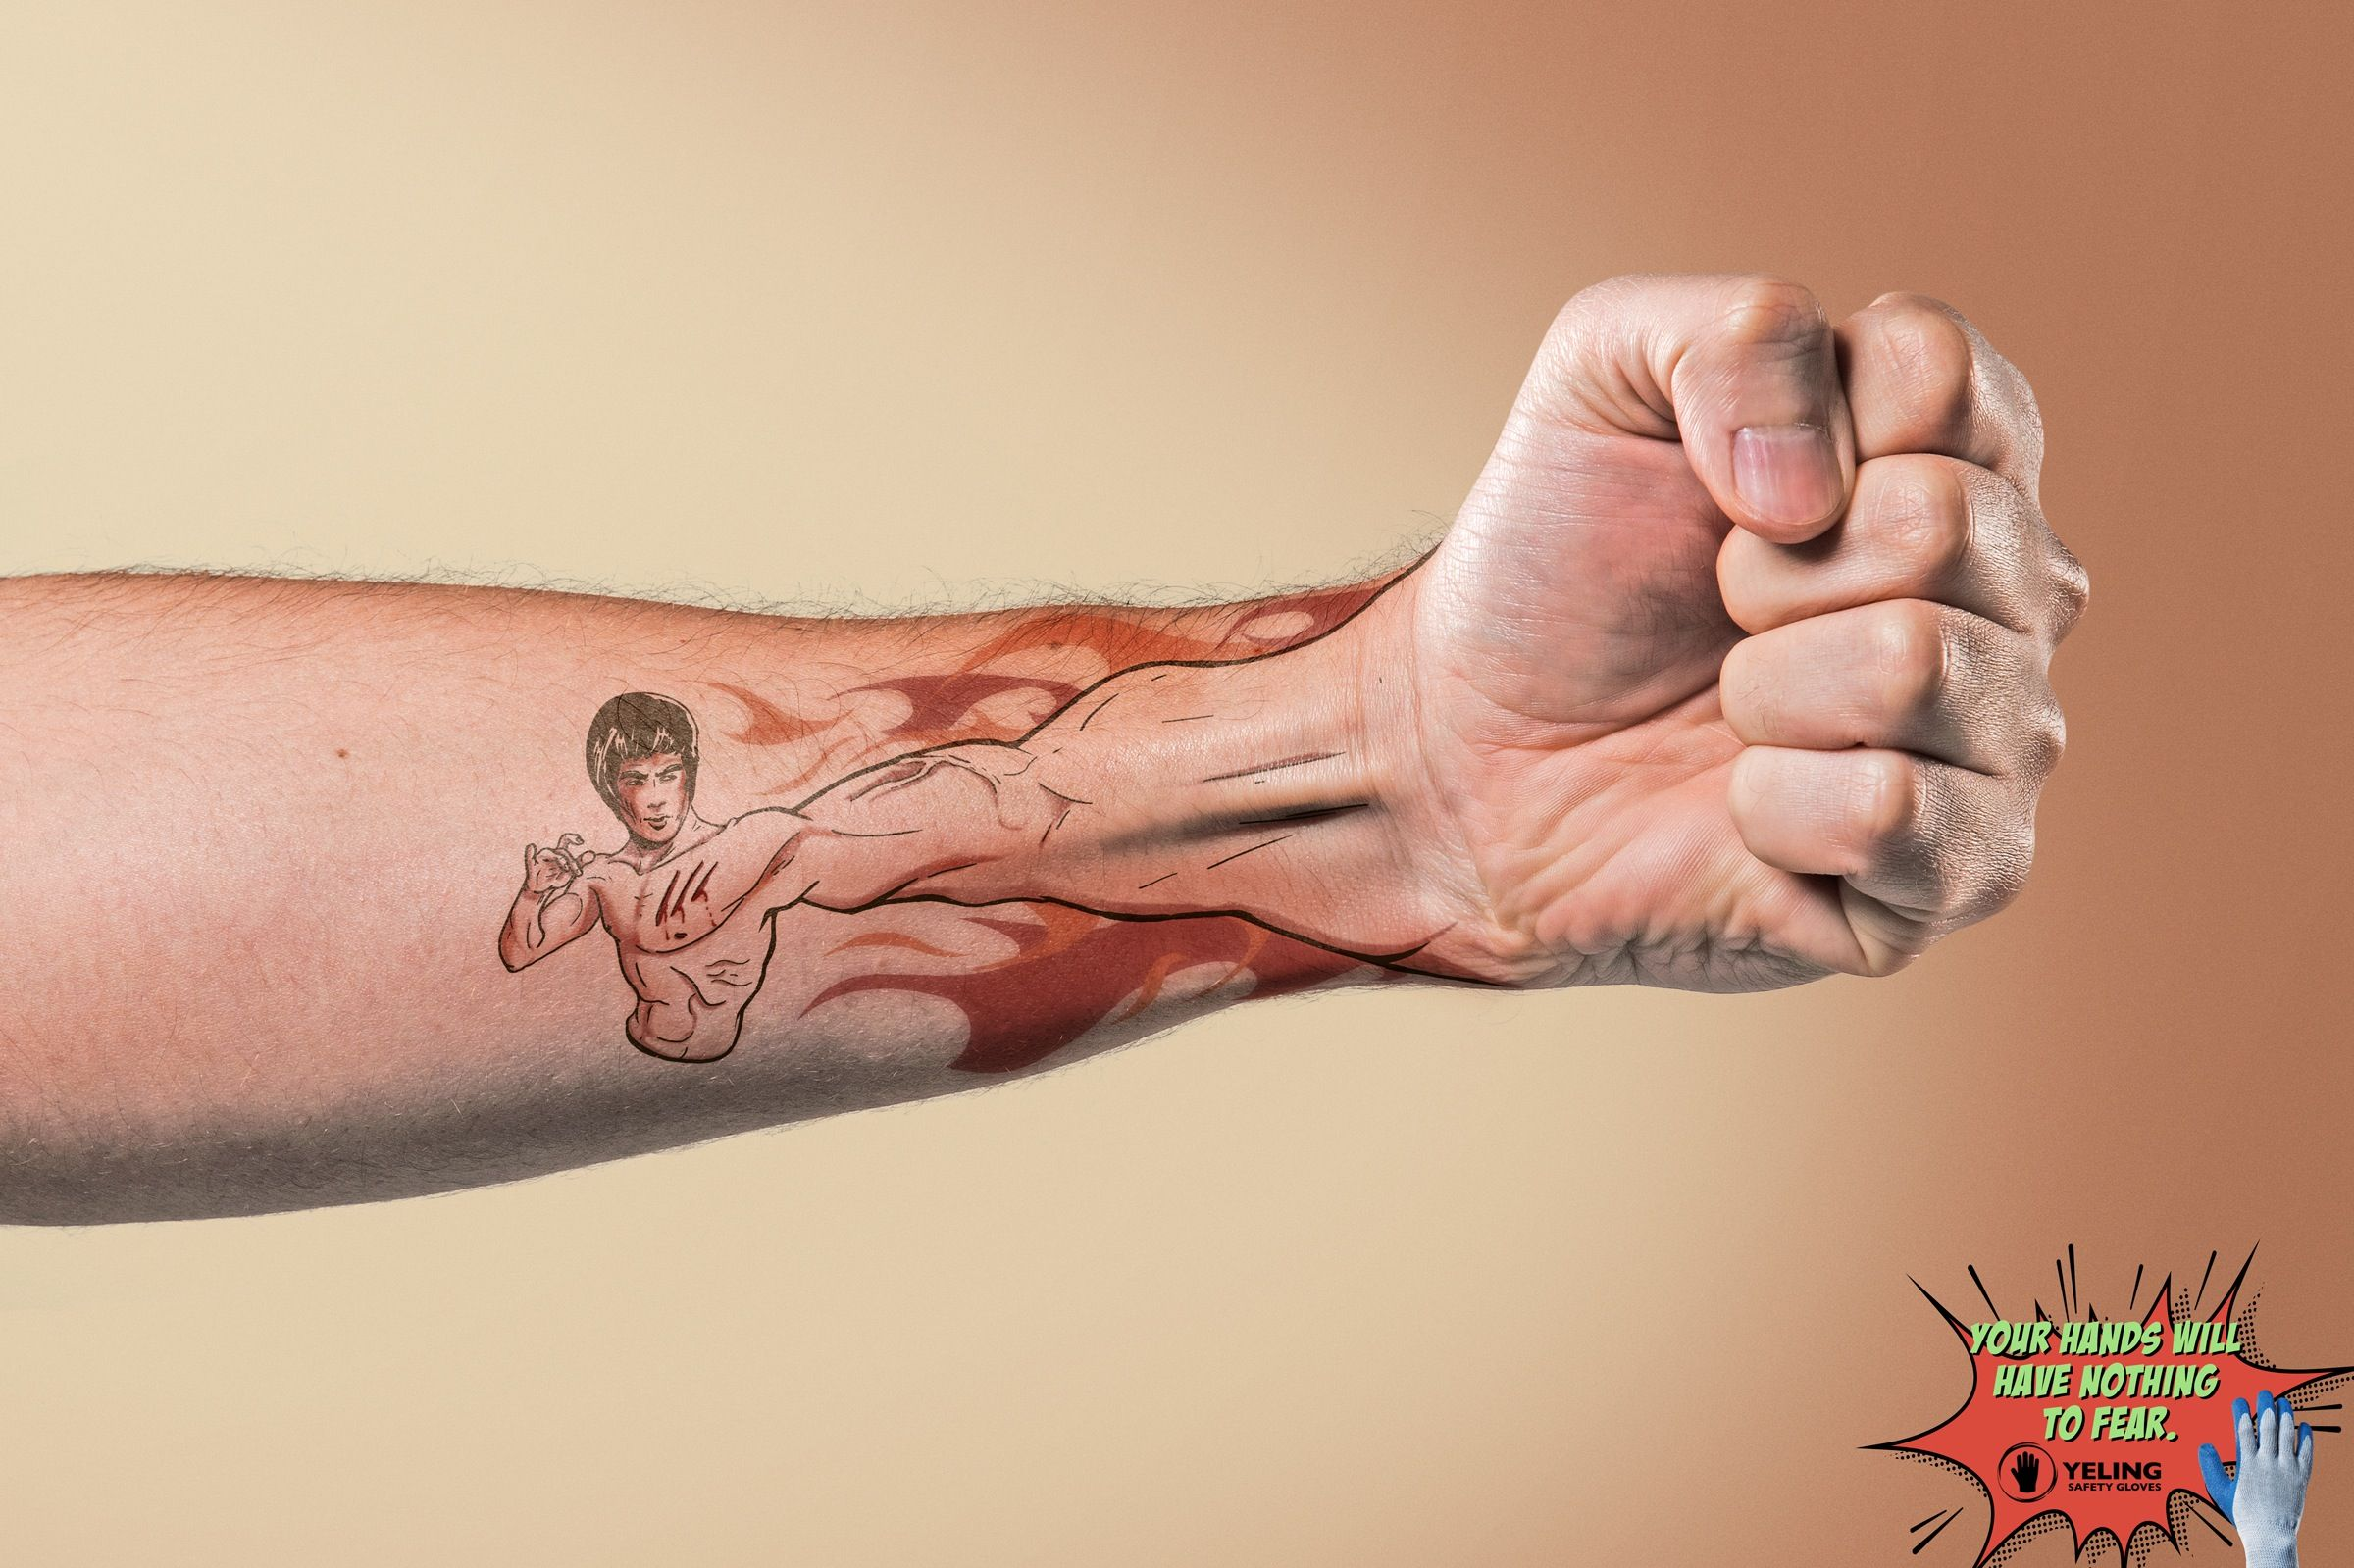 Yeling Safety Gloves Arm 2 Advertising Print Best Tattoo Ever Fist Tattoo Cool Tattoos